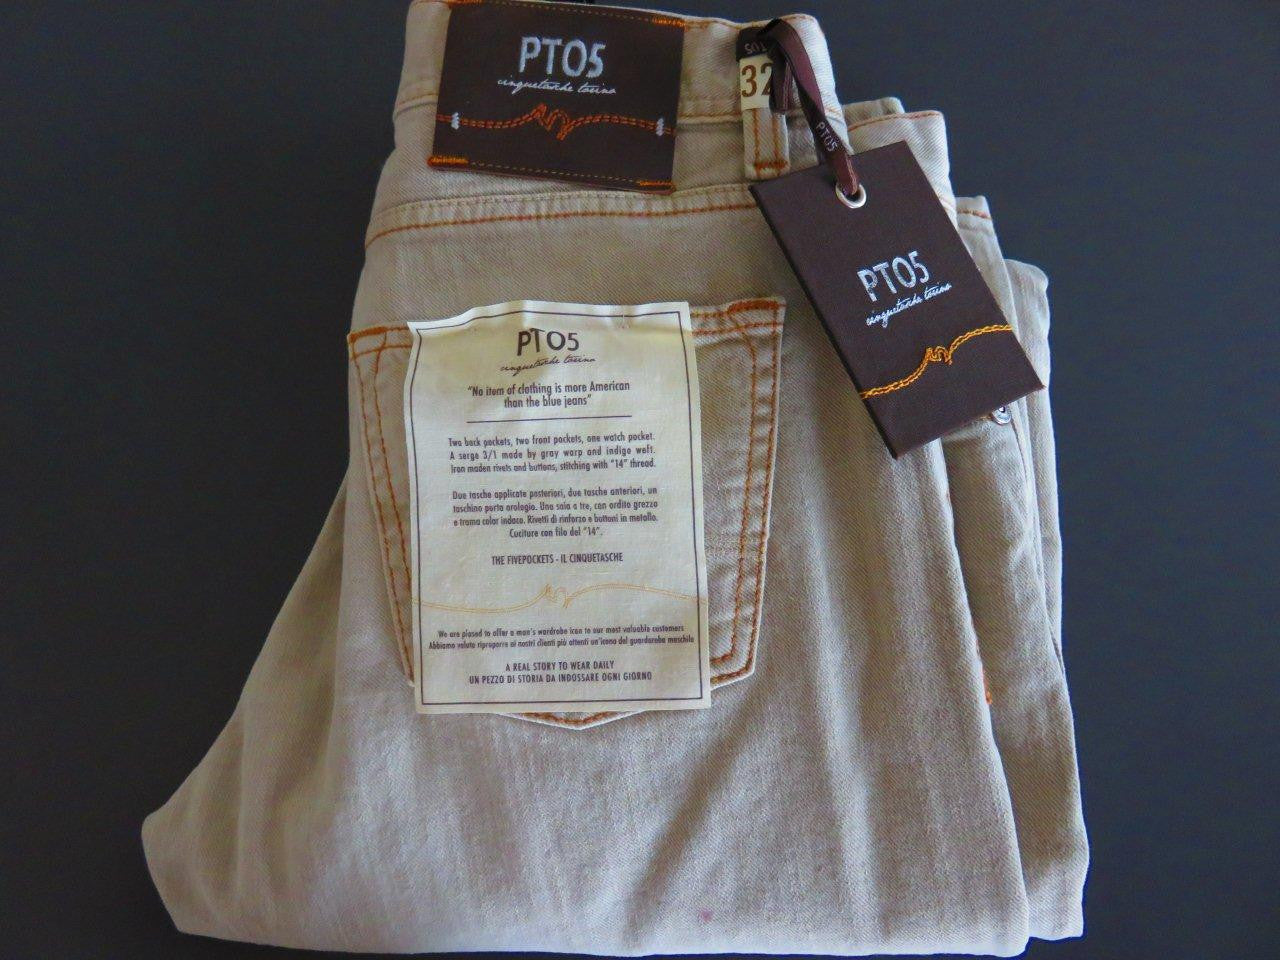 Pantaloni Torino - PT05 Denim washed beige